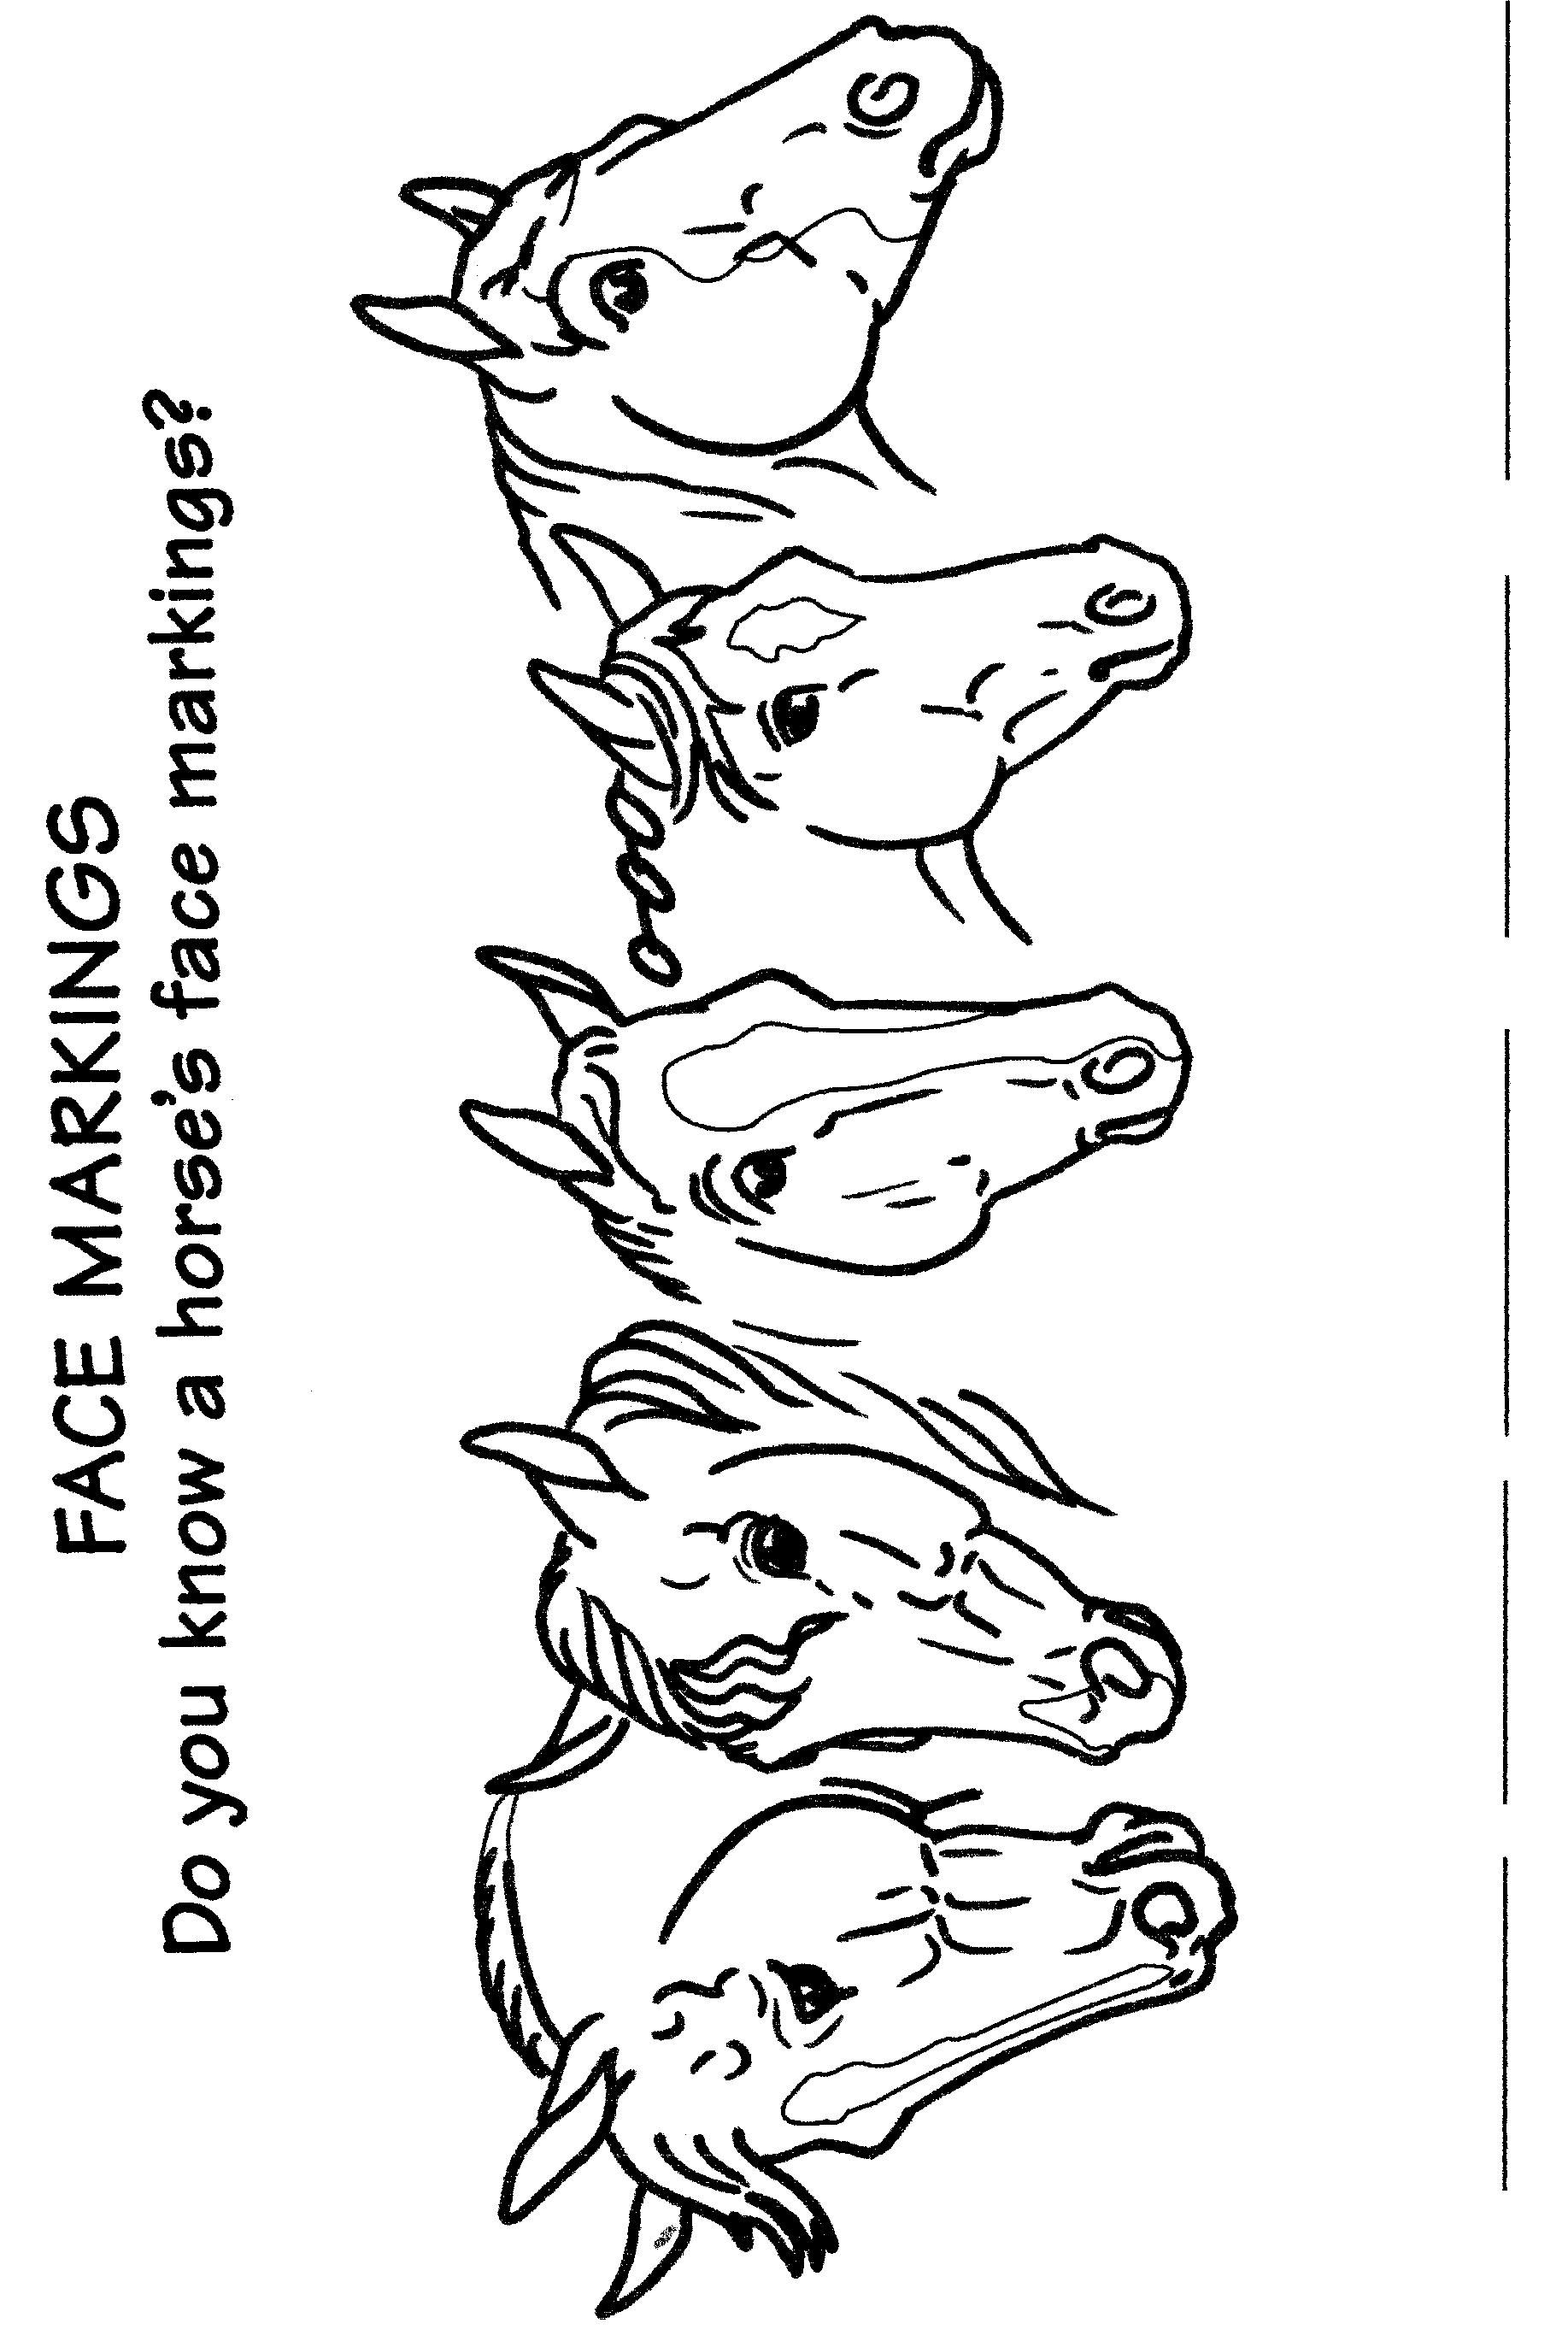 Worksheet Horse Anatomy Worksheet Grass Fedjp Worksheet Study Site